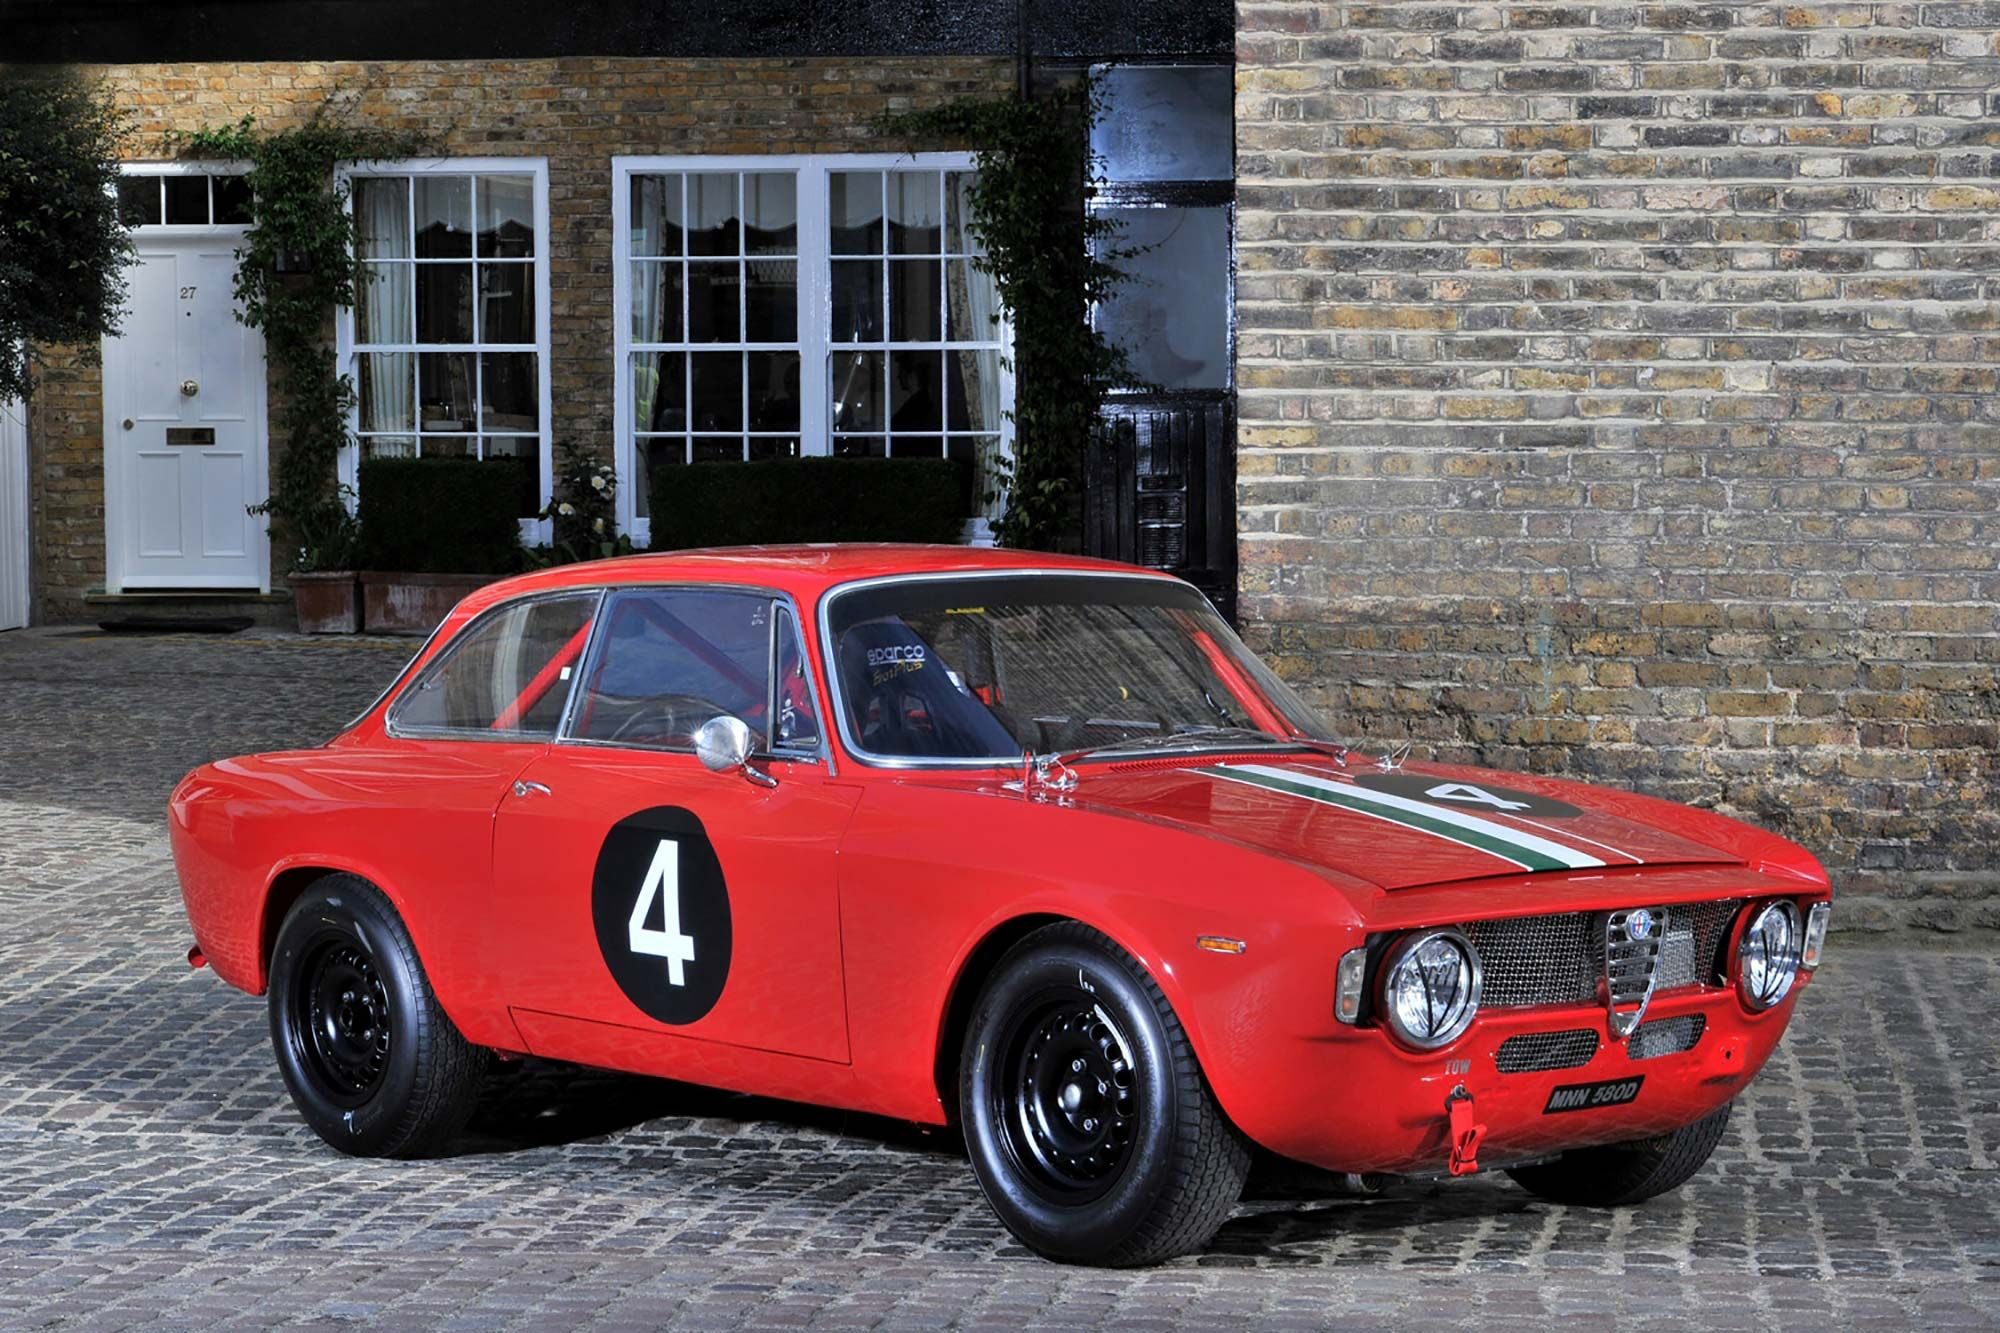 1965 Alfa Romeo 105 Gta Cars For Sale Fiskens For The Love